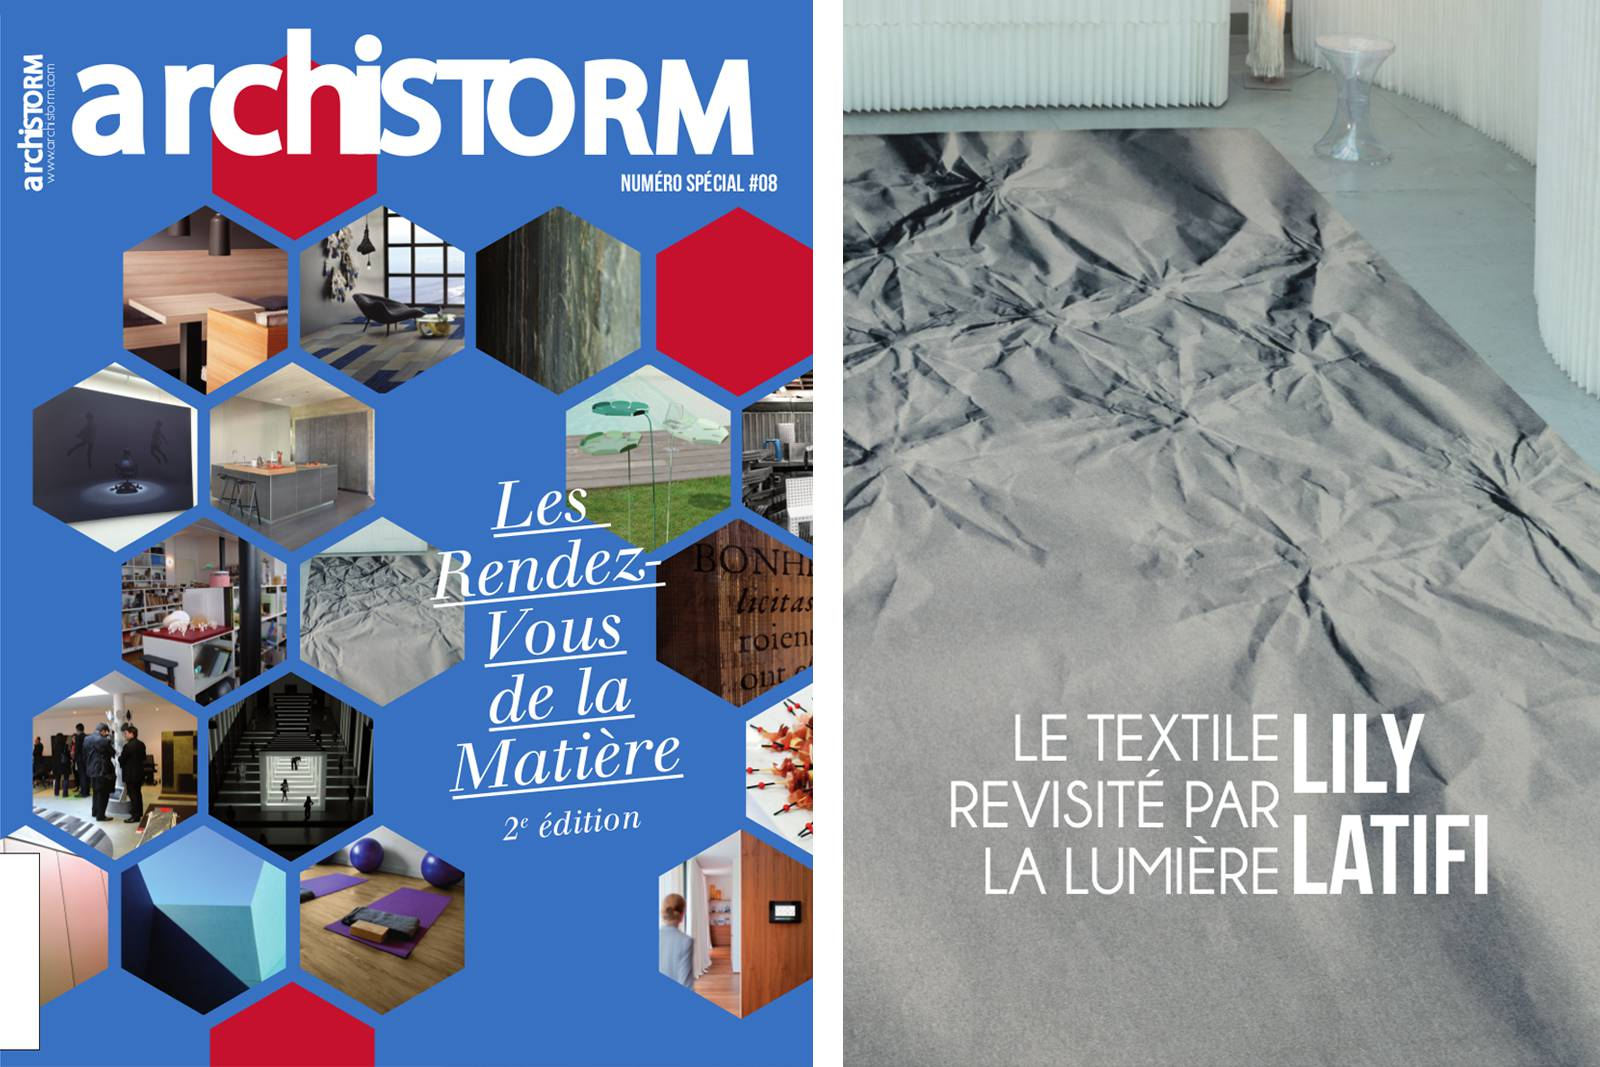 Archistorm - special issue #8 - 2014 - Textiles revisited by natural light